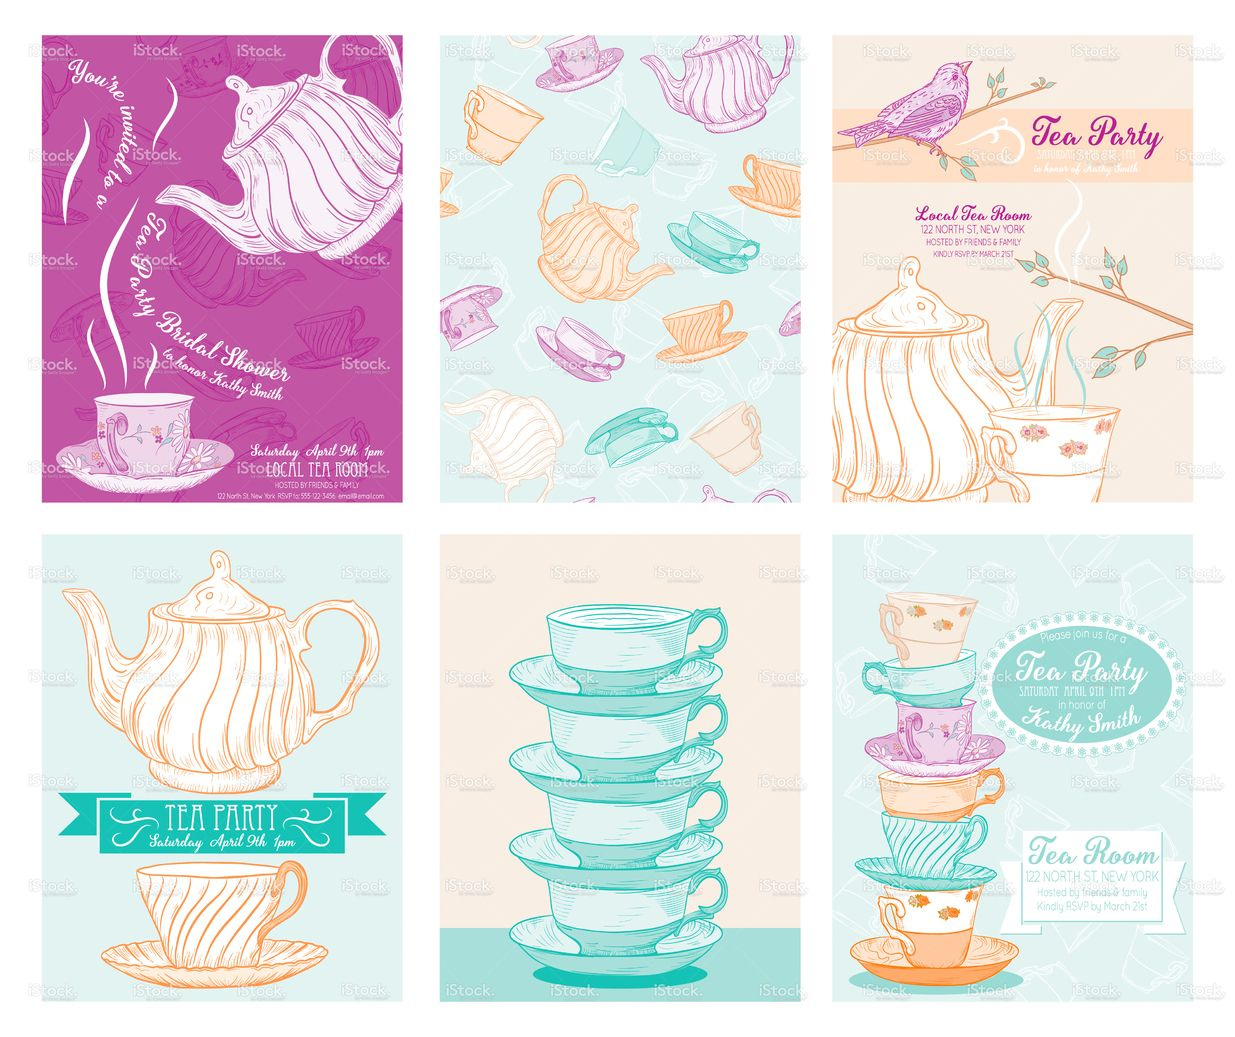 Tea Party Invitation Templates There Are Stacked Teacups With